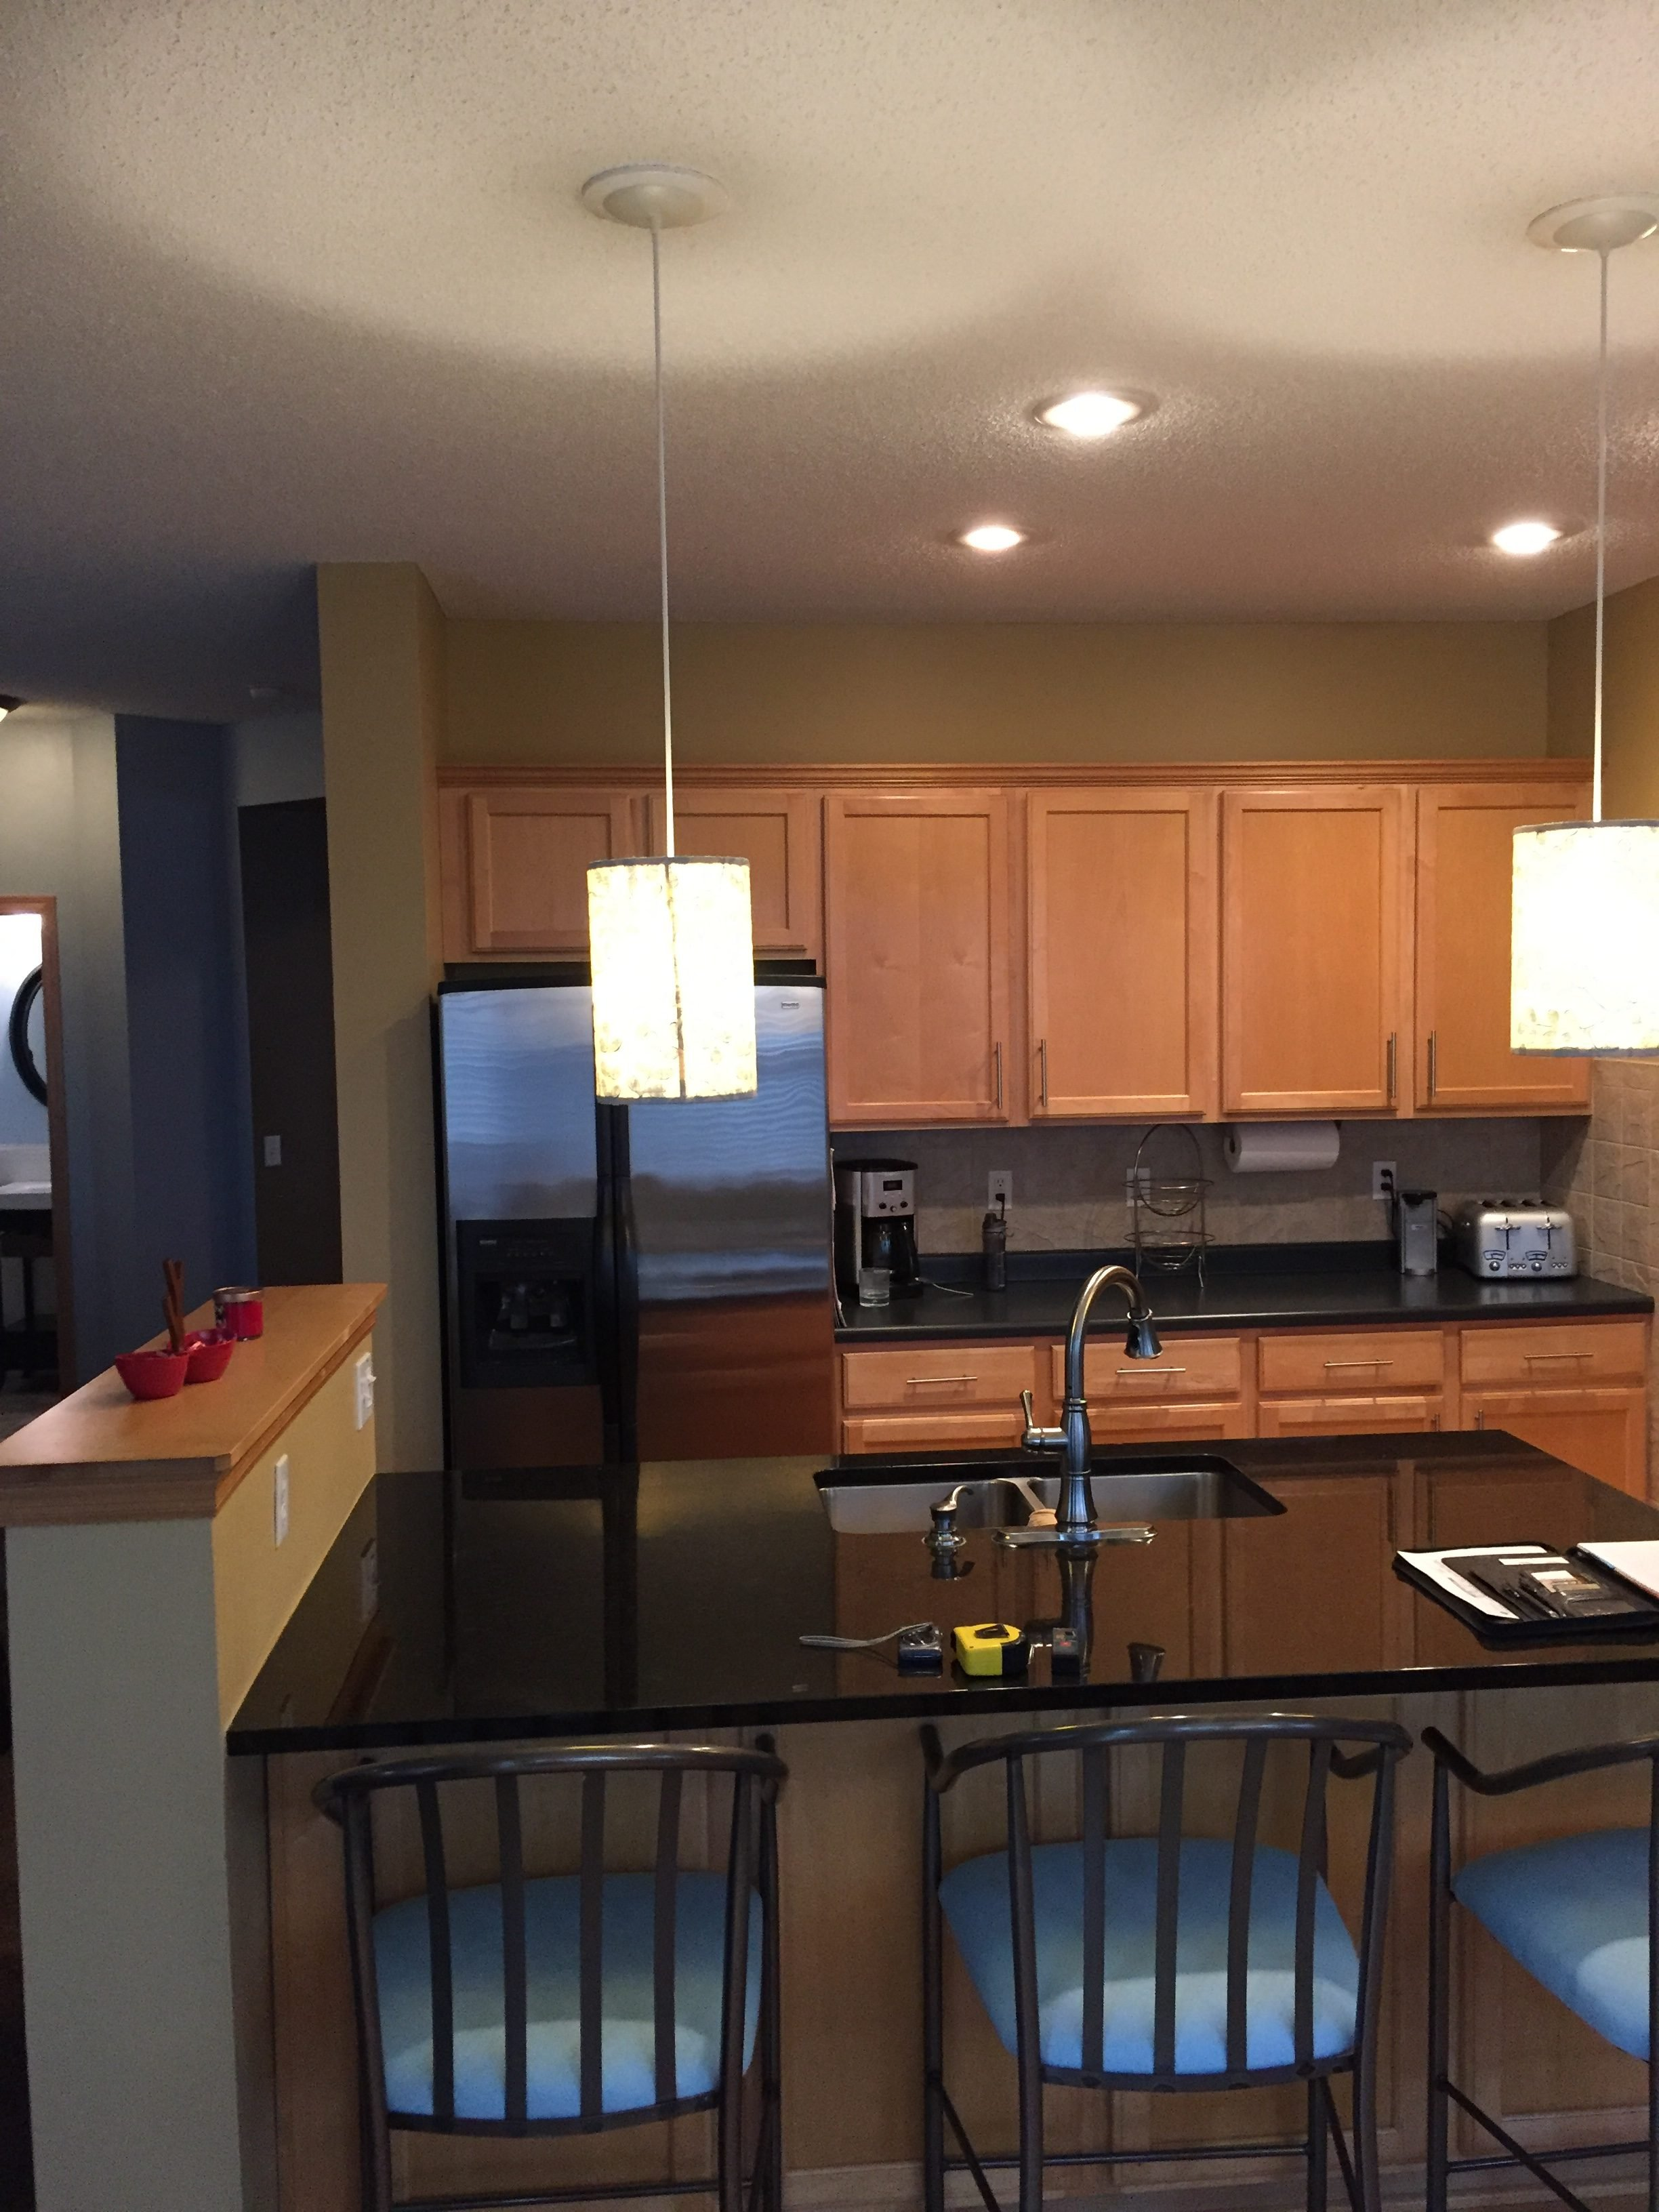 Black countertops were a bit too much of a contrast against the warm wood cabinets, and made the space feel much smaller than it was.